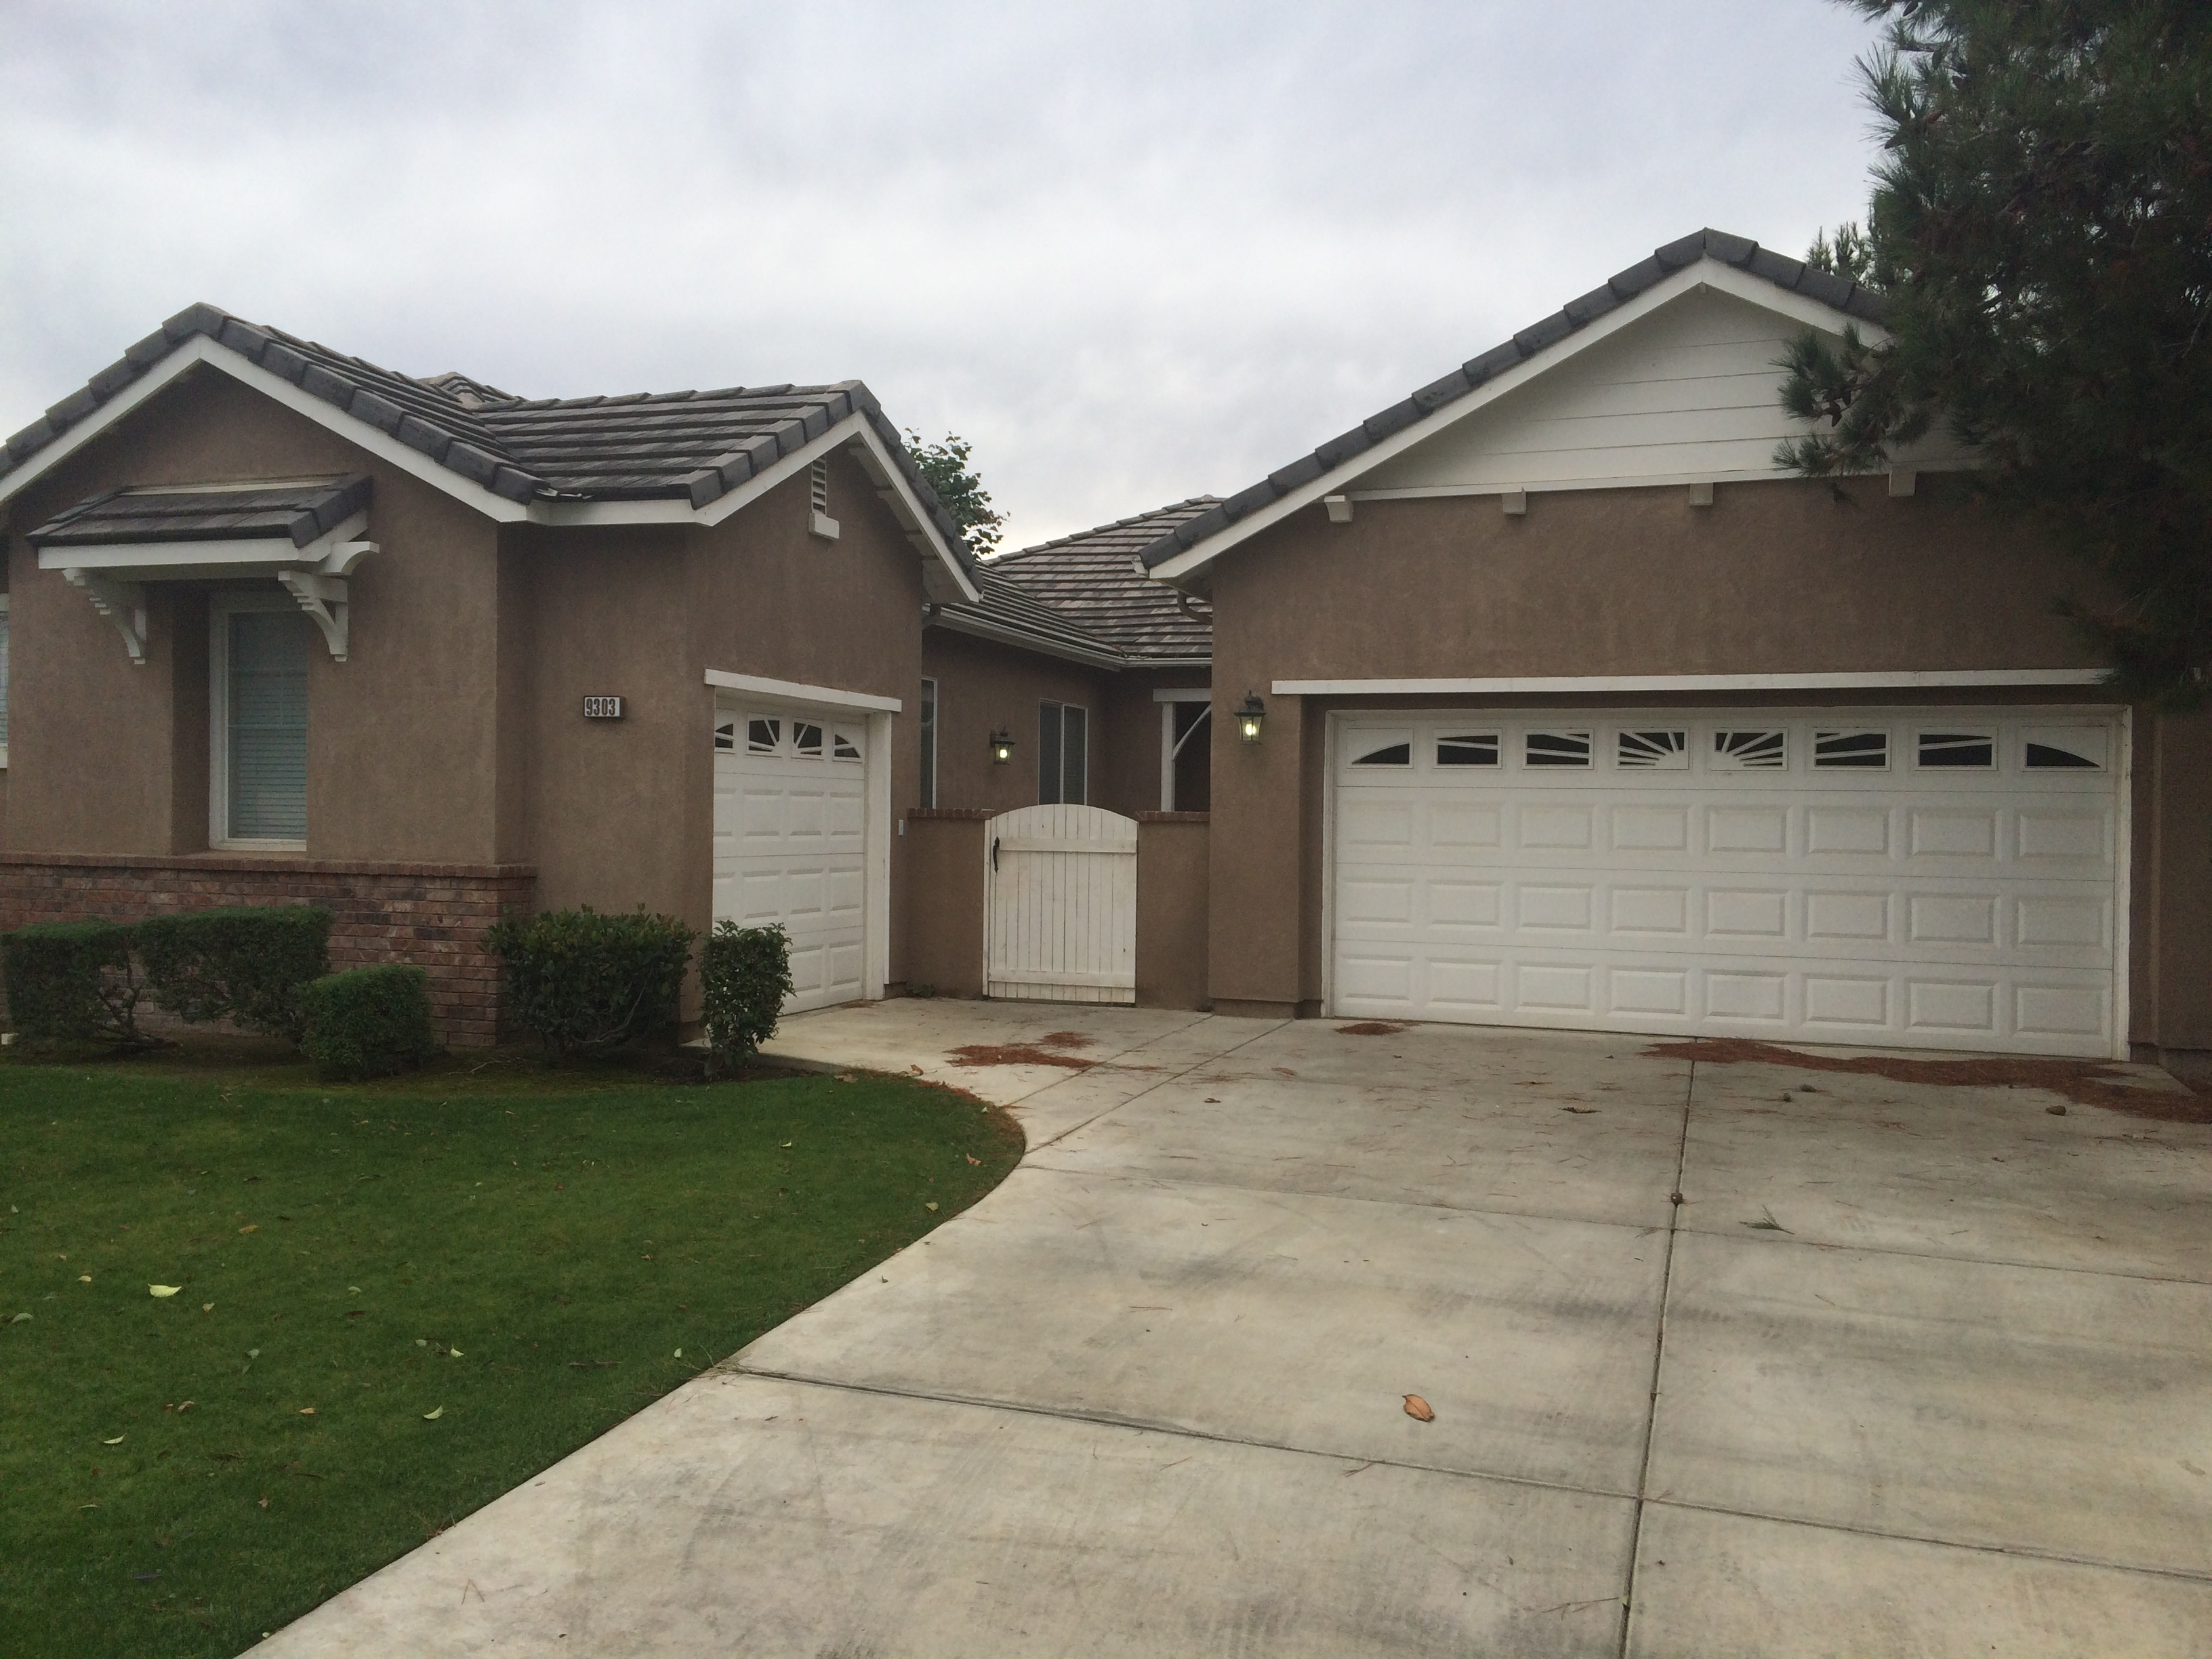 $1850 – 9303 Camargo Ave, Bakersfield, CA 93312 northwest golf course gated house for rent